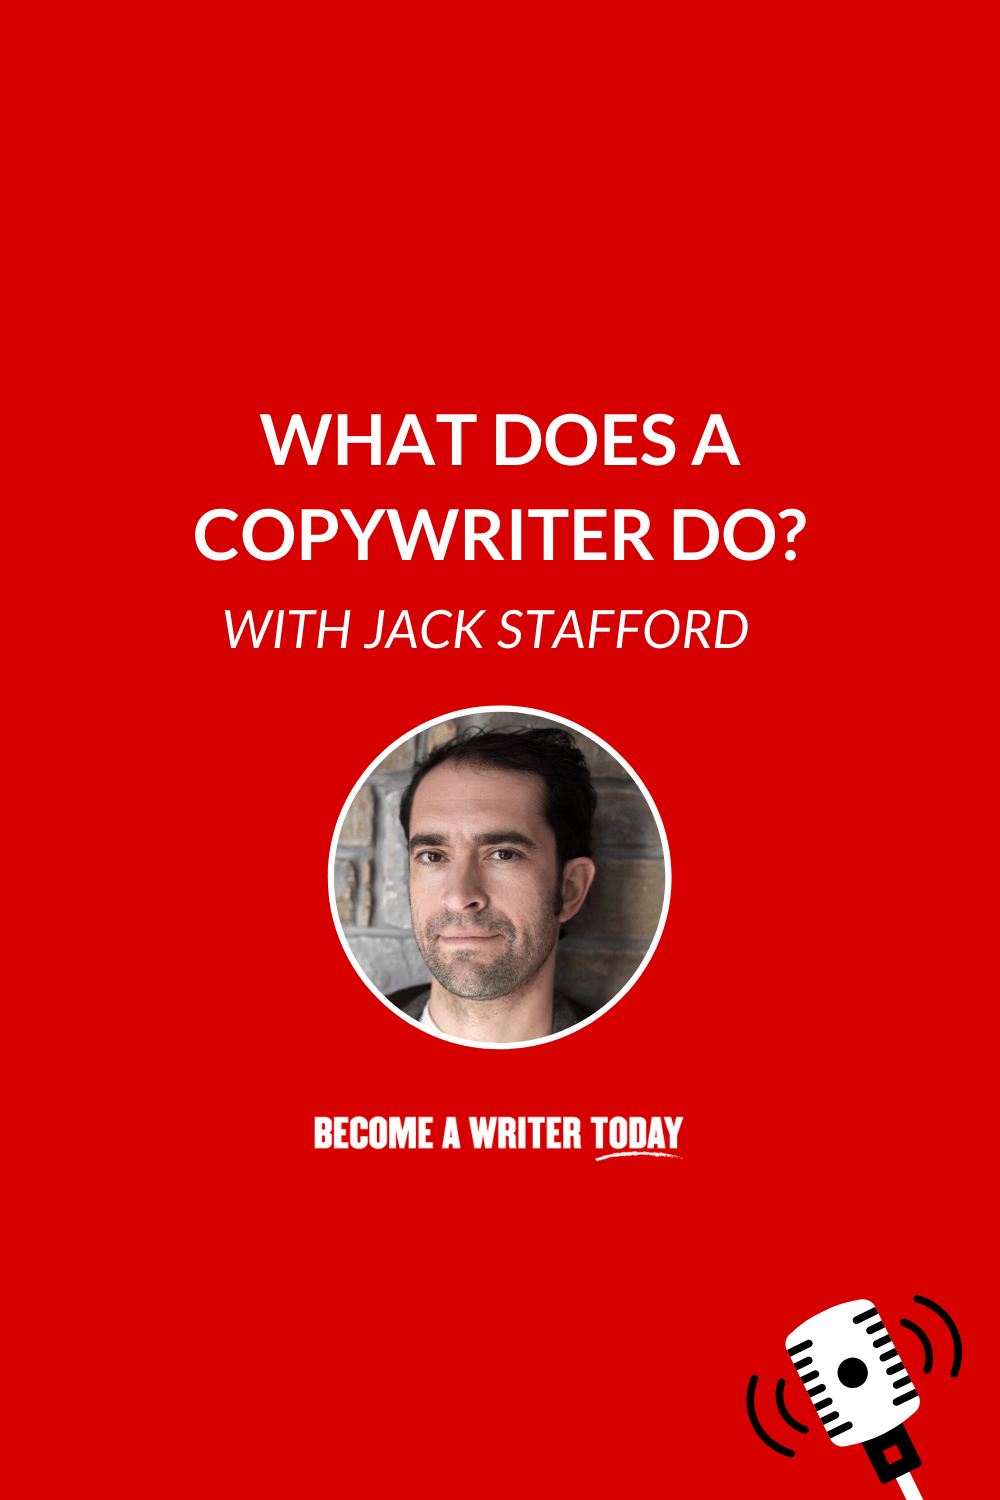 What Does a Copywriter Do And How Do They Make Money? With Jack Stafford of the Copywriter Collective